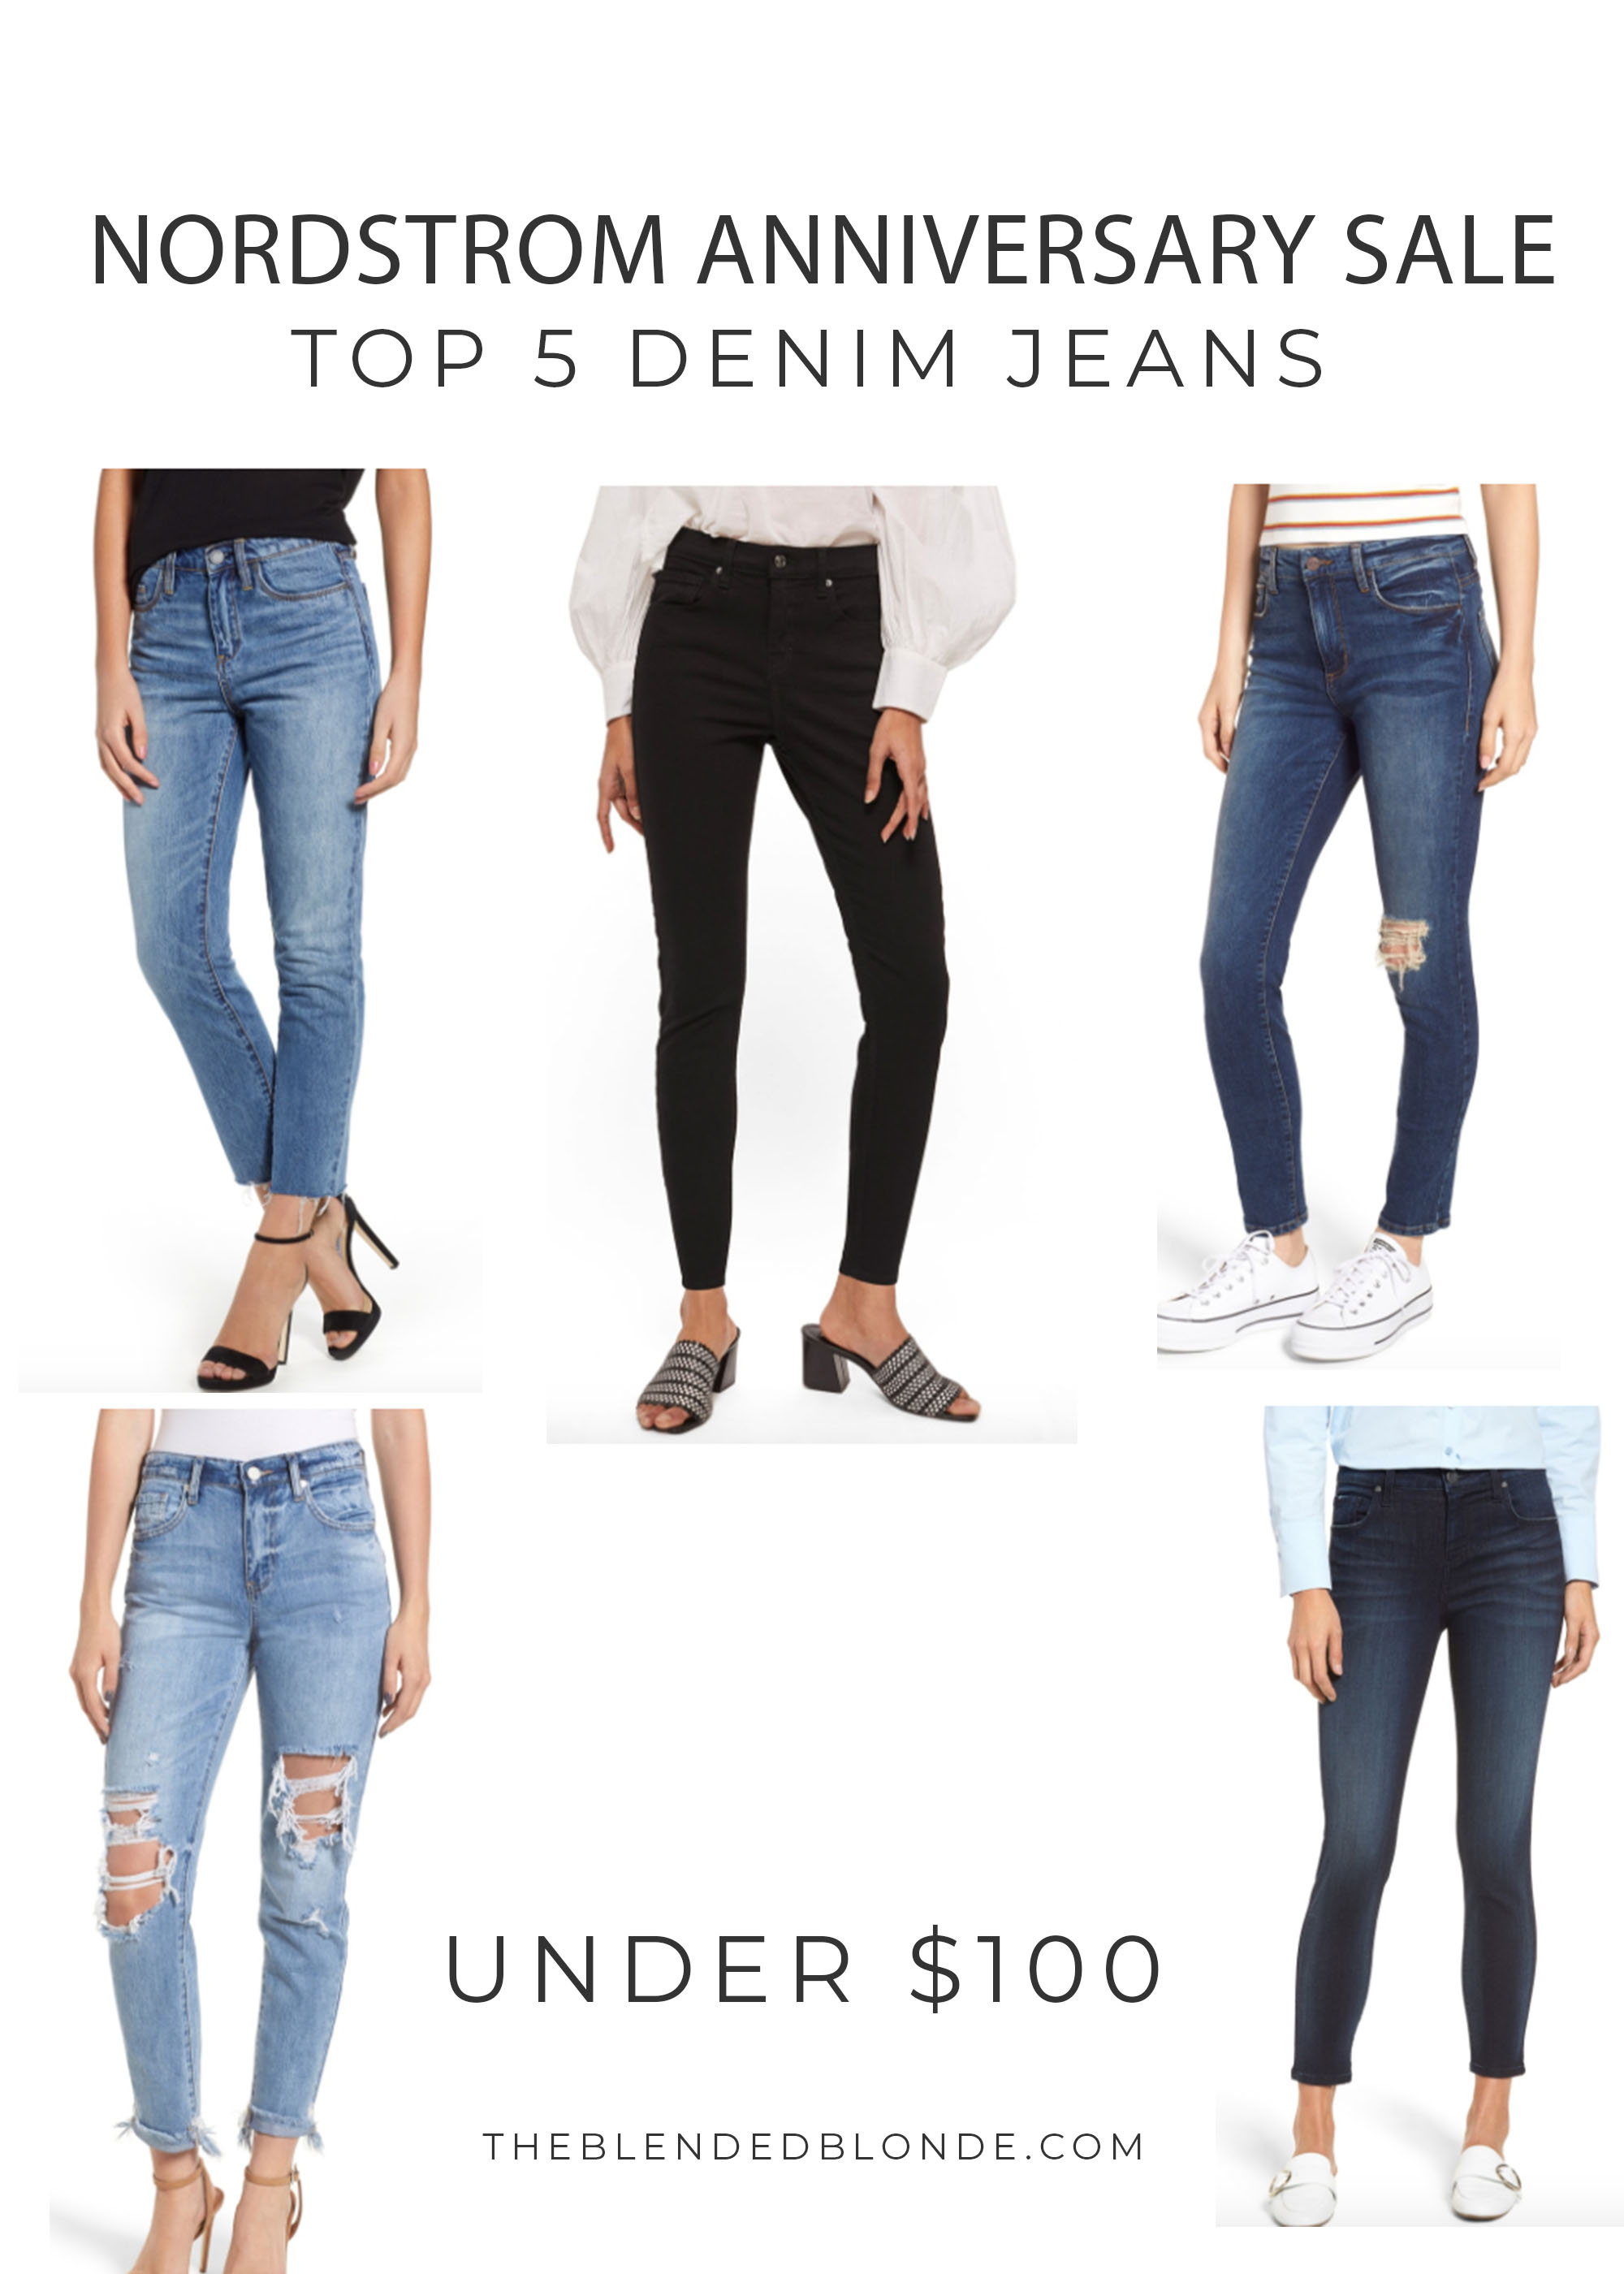 TOP DENIM PICKS FROM THE NORDSTROM ANNIVERSARY SALE 2018